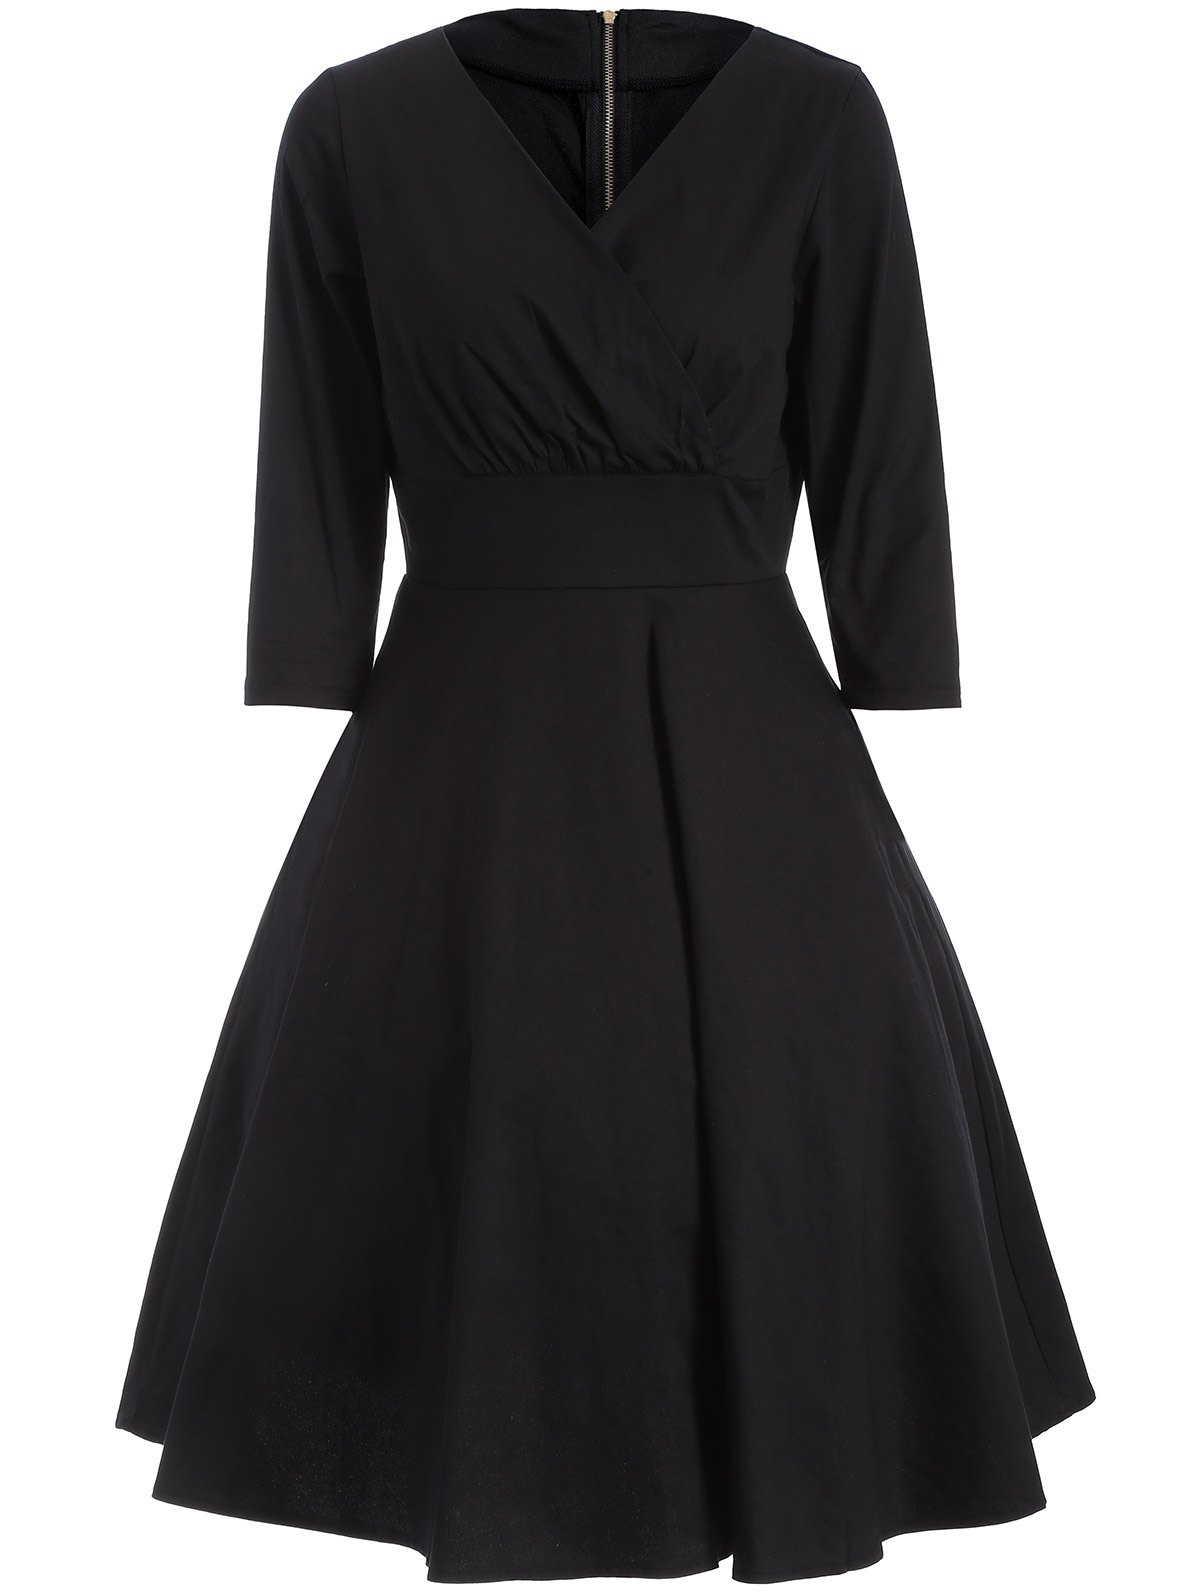 Ruched Surplice Flare Dress - BLACK M